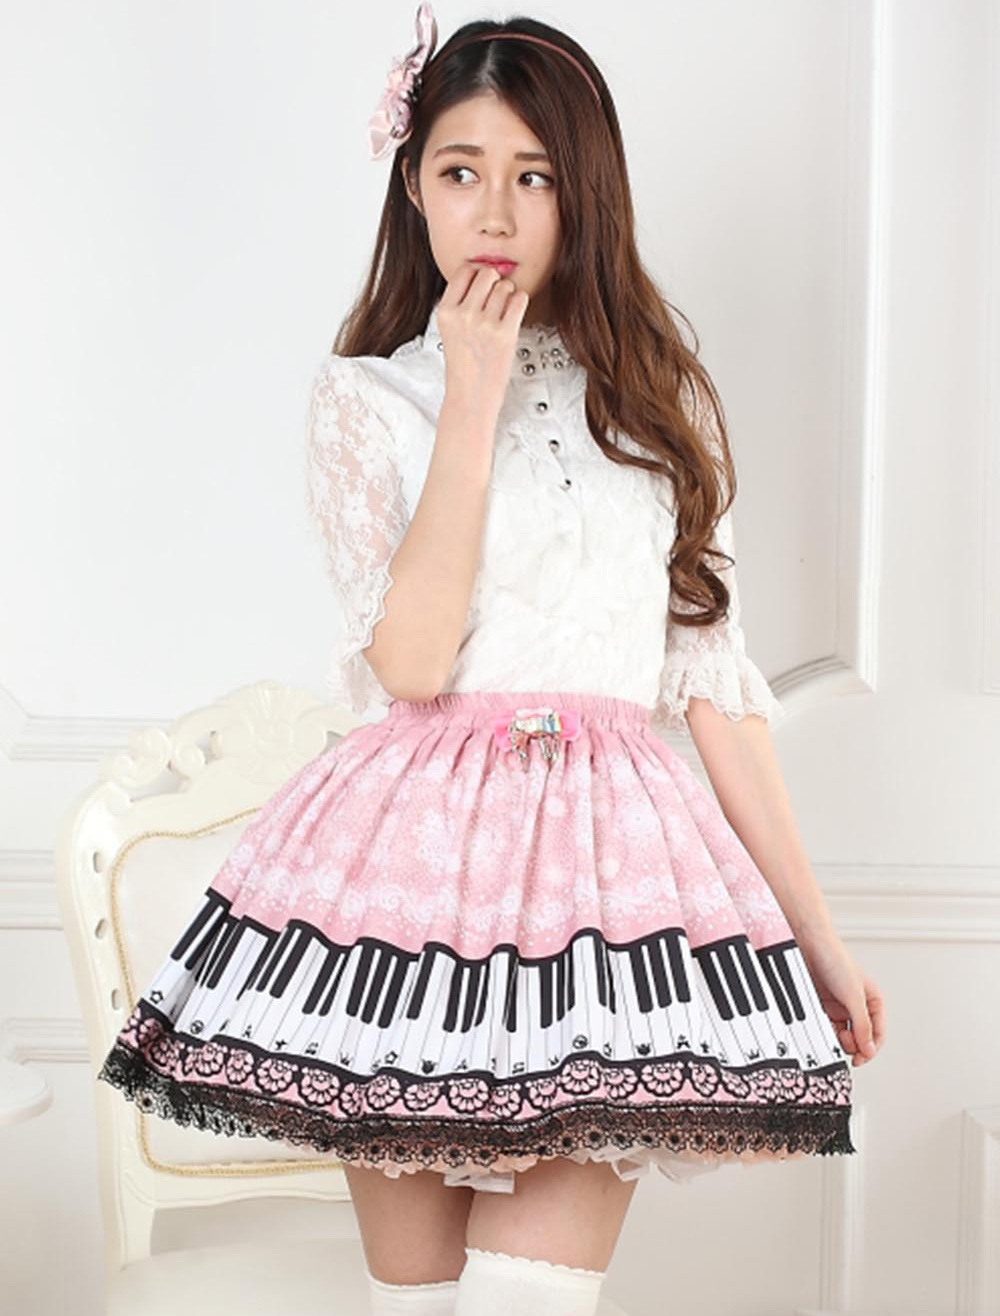 Buy Sweet Pink Piano Print Lolita Skirt Lace Trim for $27.19 in Milanoo store